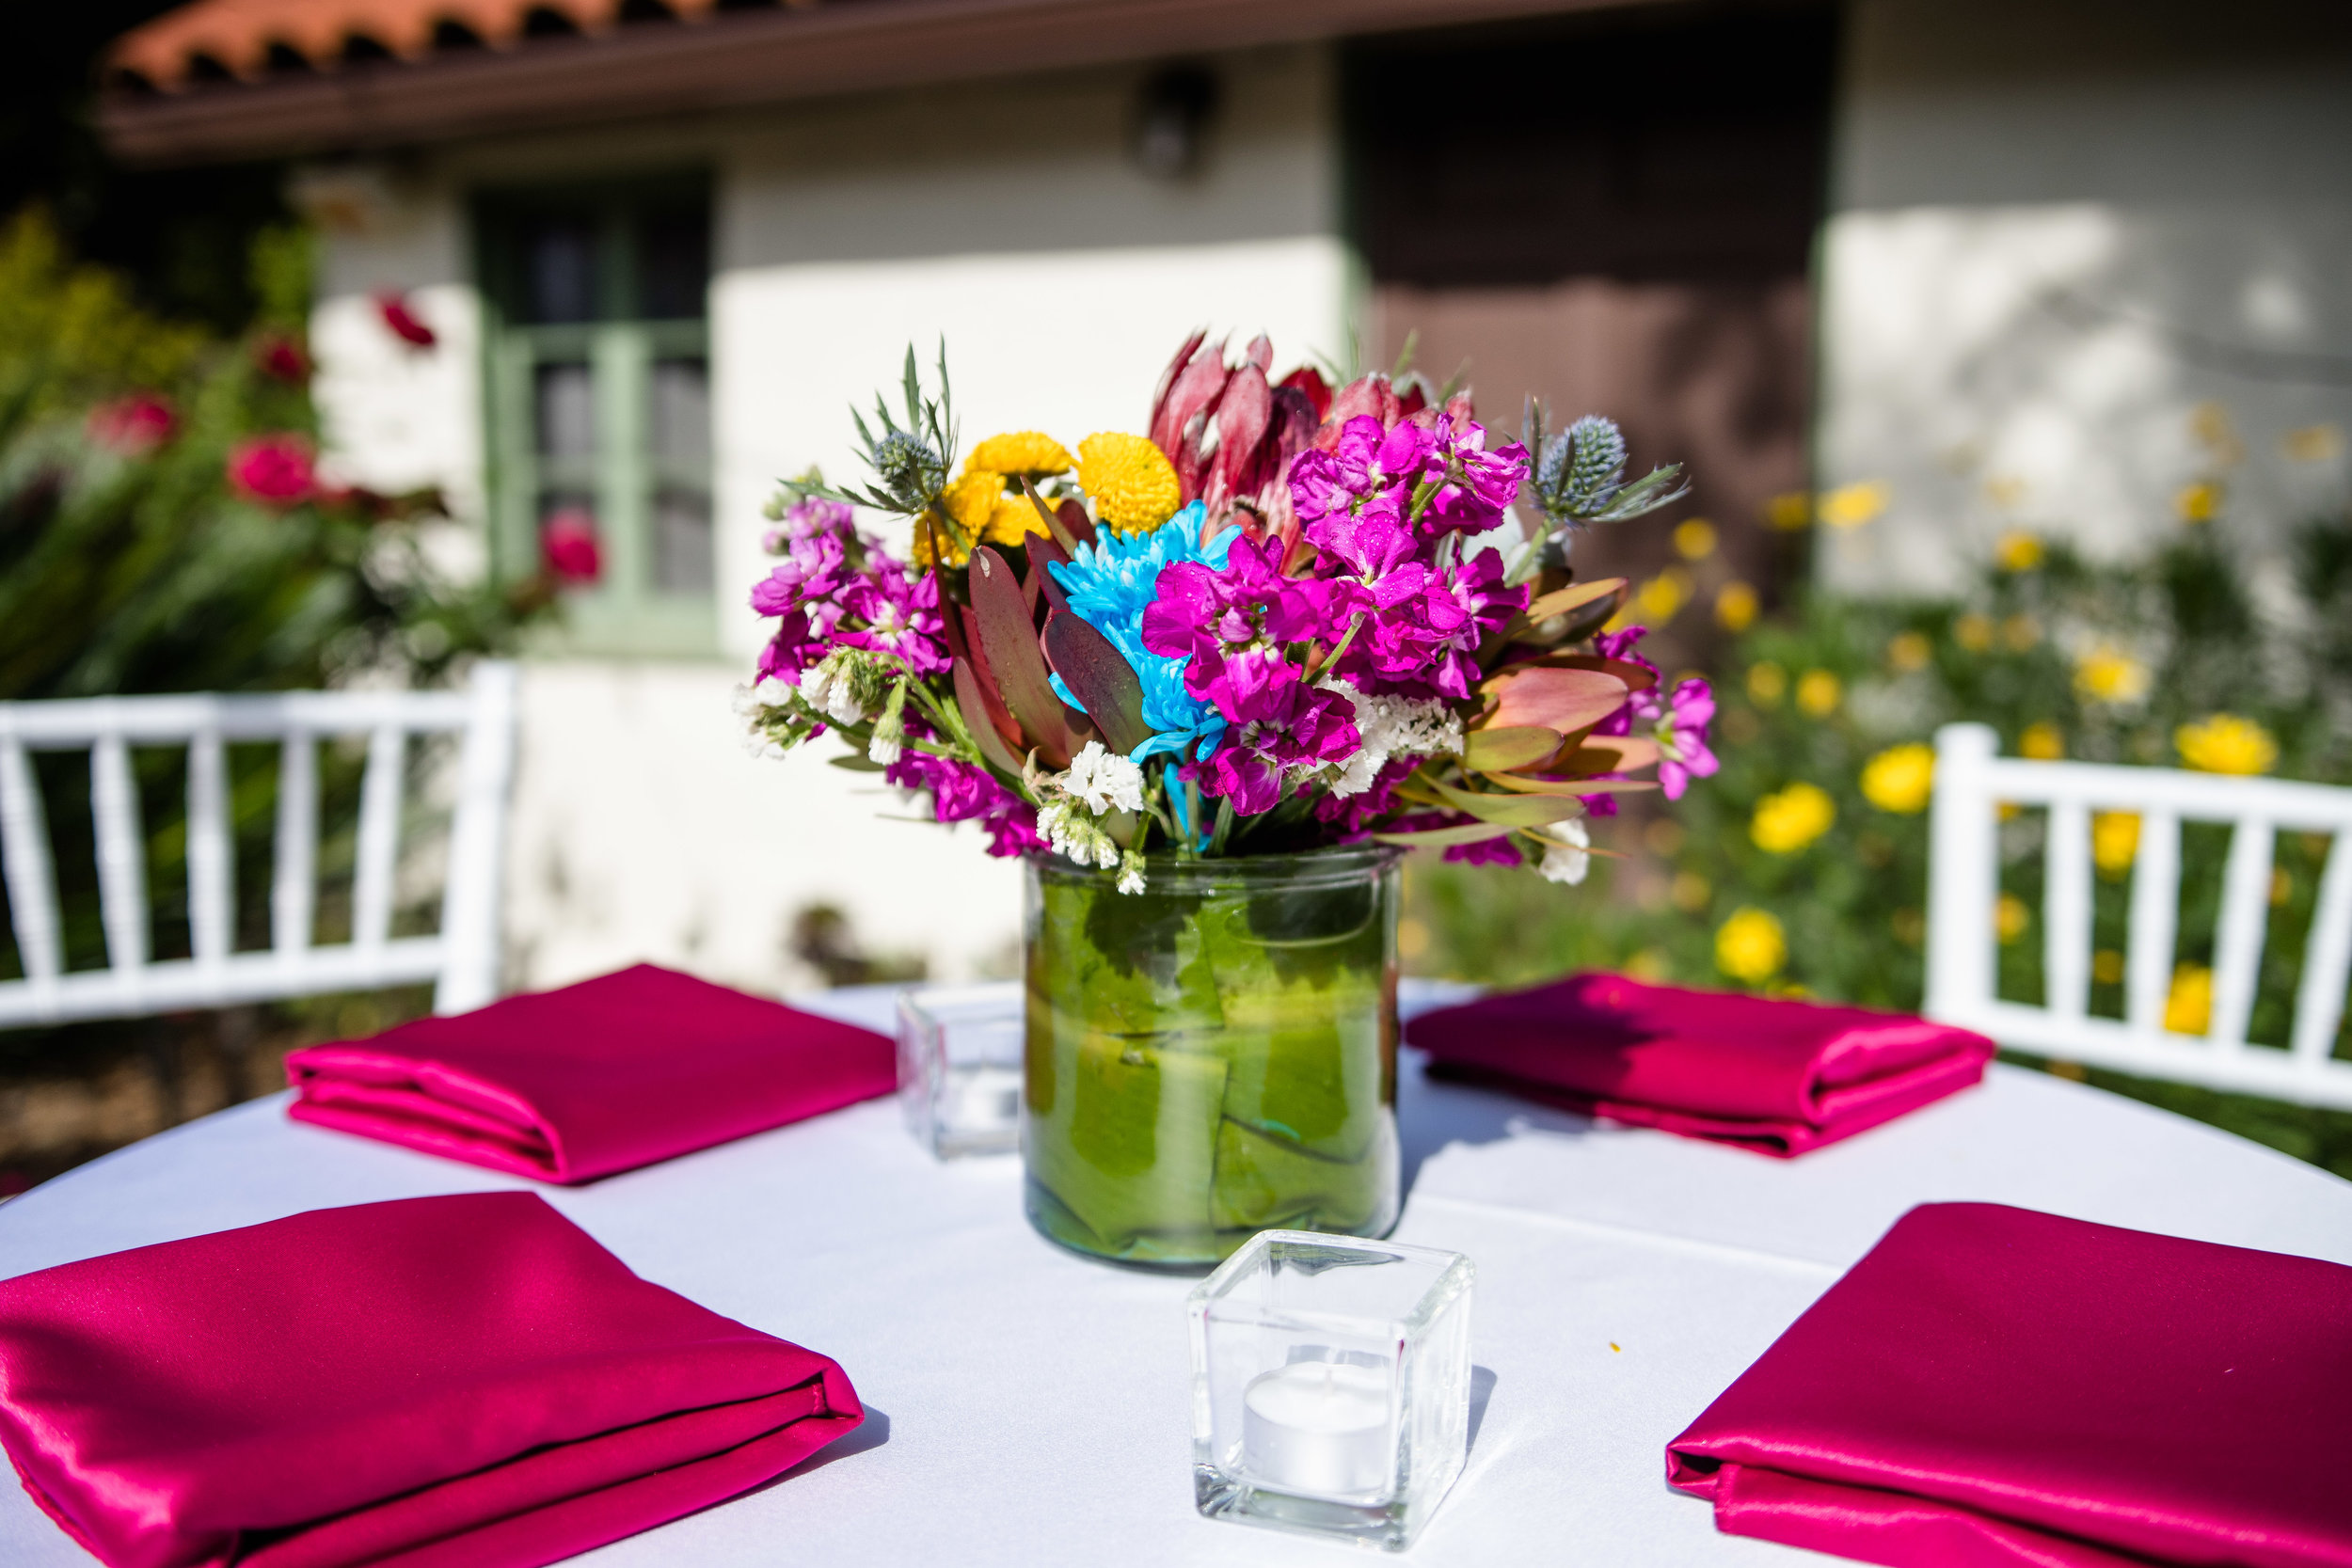 Vibrant Fiesta Backyard Wedding Reception spring florals adorned each table with hot pink linens.jpg